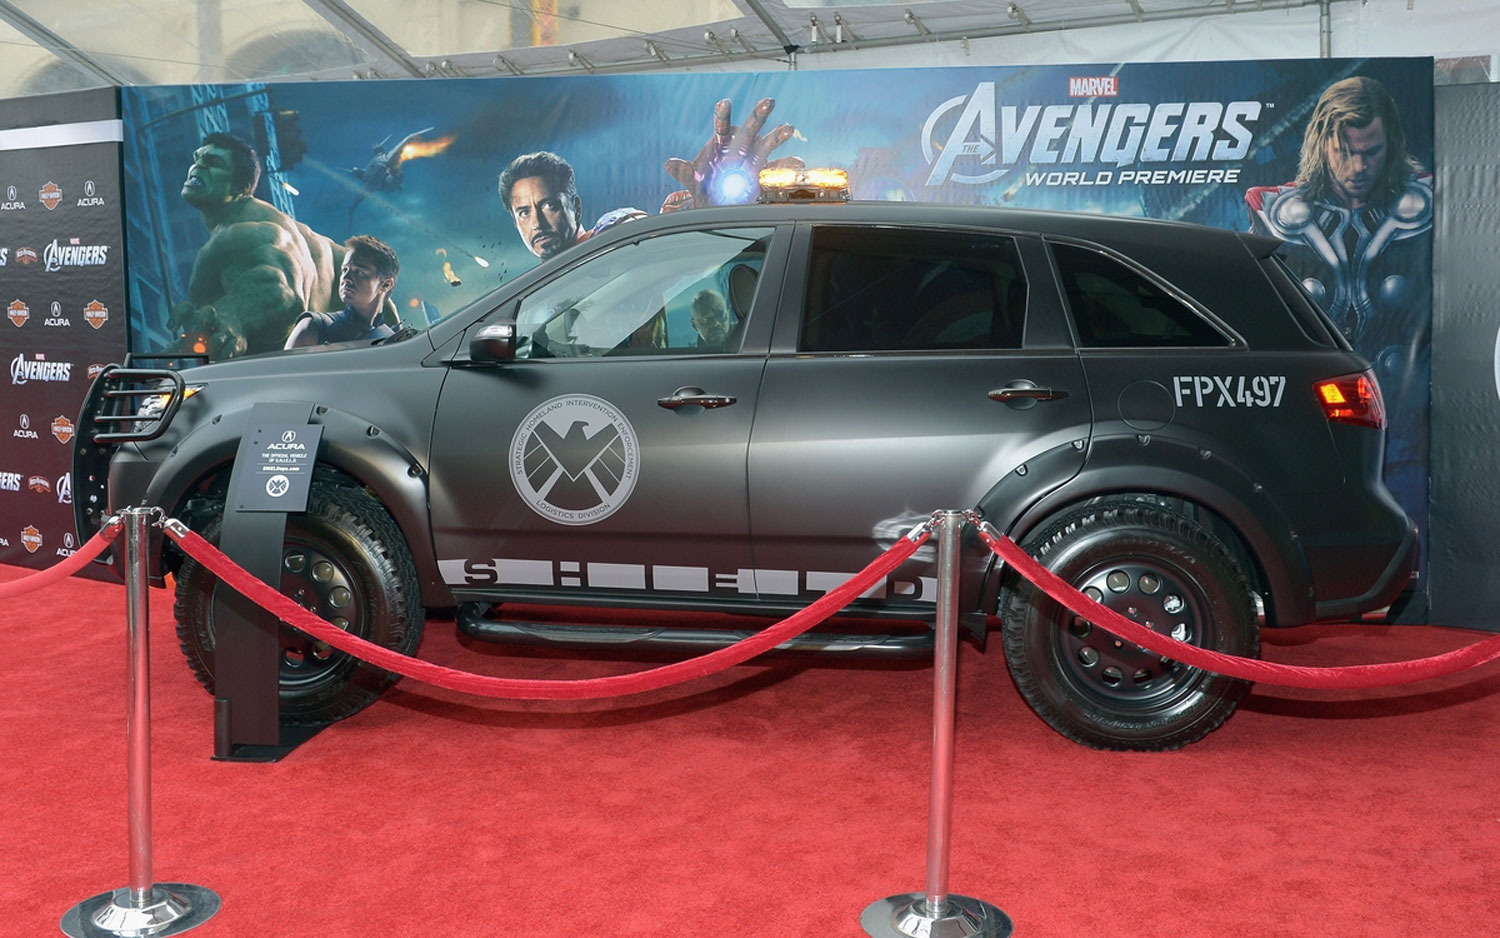 Acura Sports Car Rolls On The Avengers Red Carpet Event